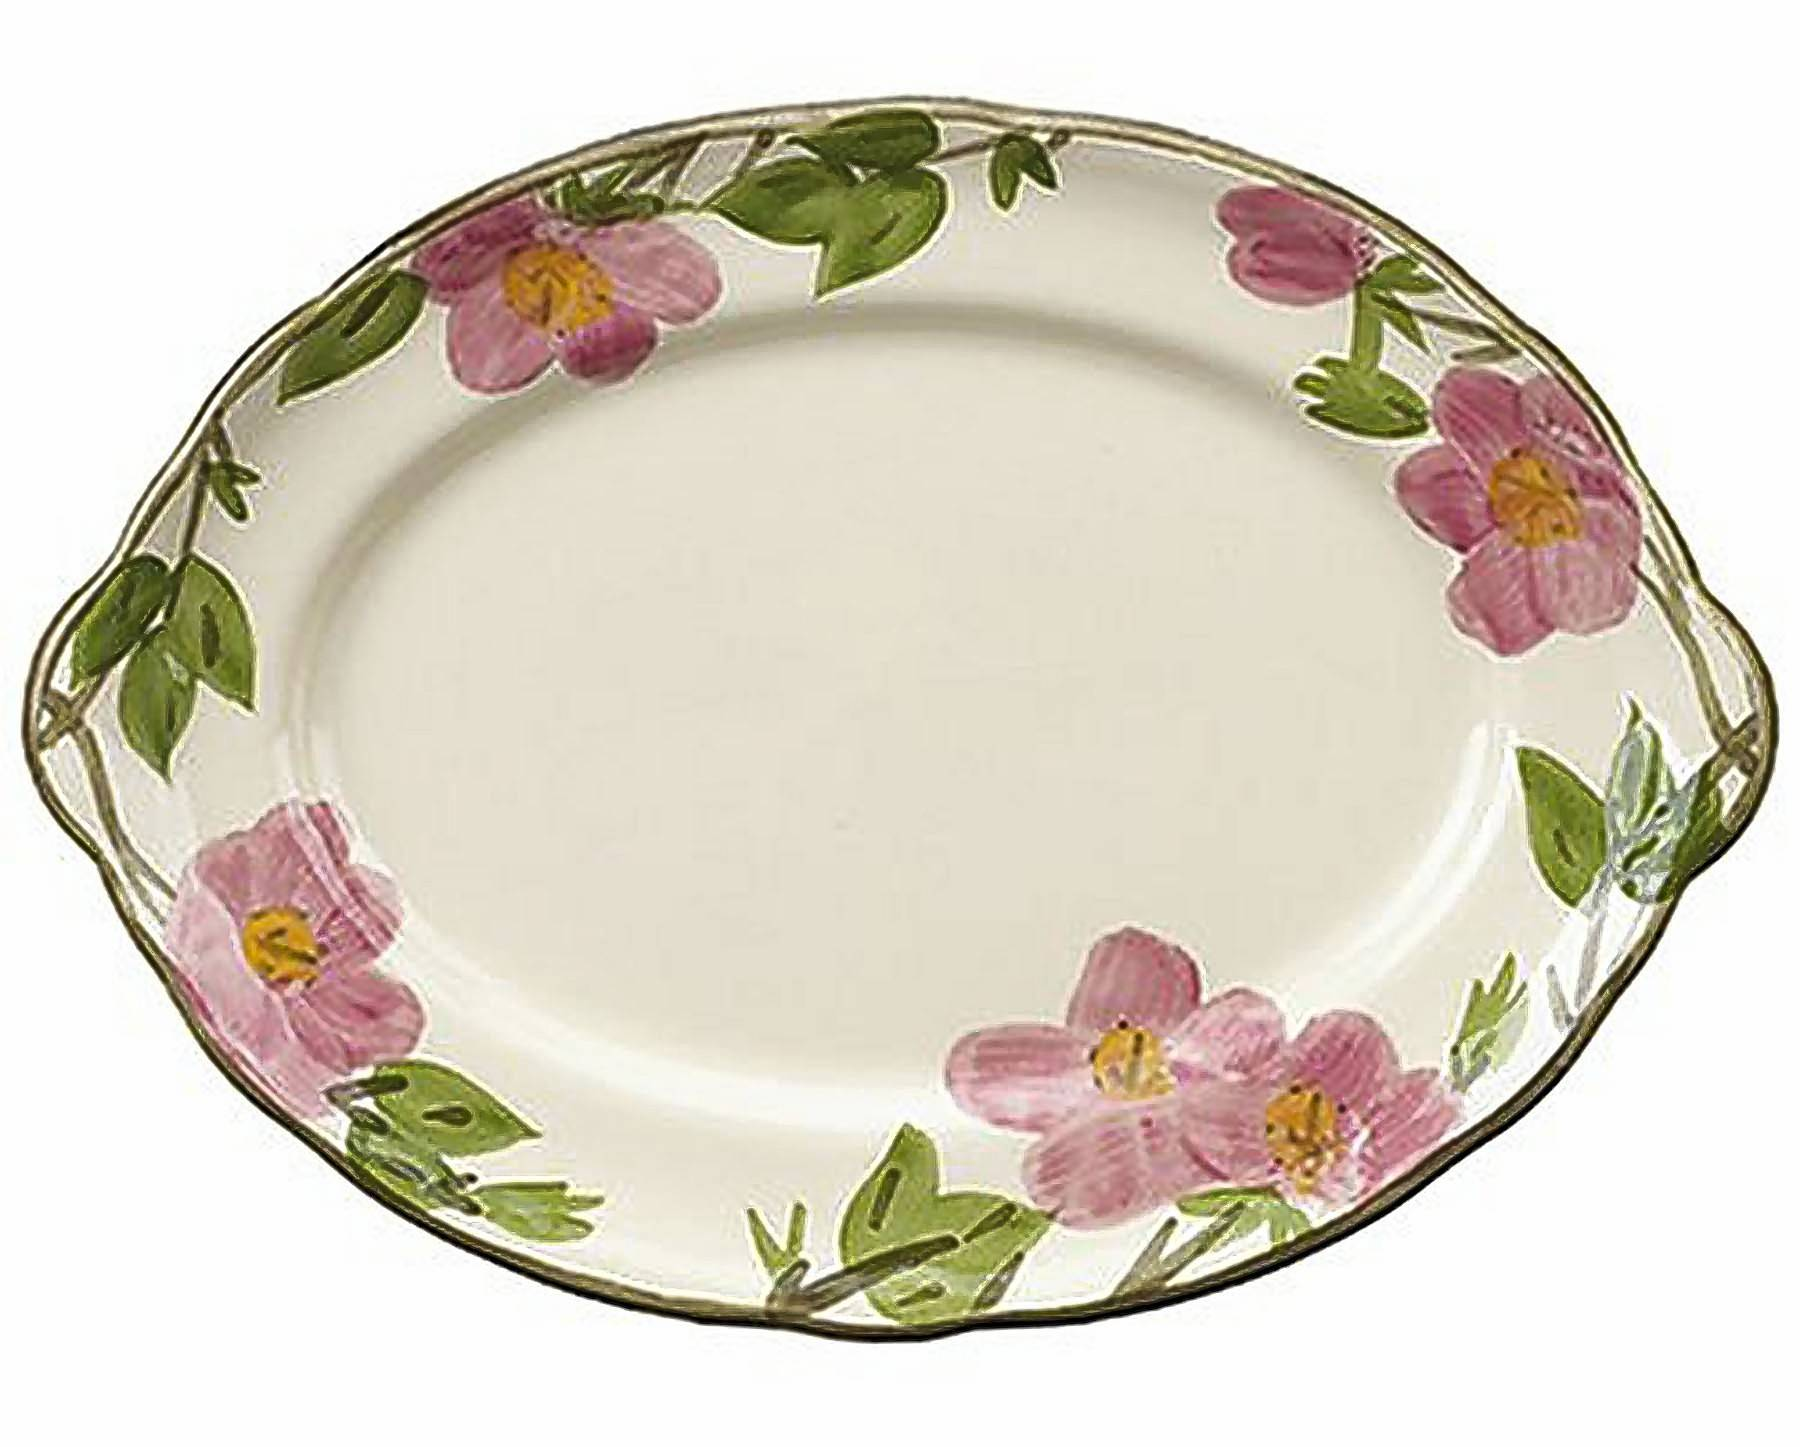 The Franciscan brand continues to produce ceramics with its popular \ Desert Rose\  pattern today  sc 1 st  Daily Herald & Earthenware dinner set design inspired by desert flowers